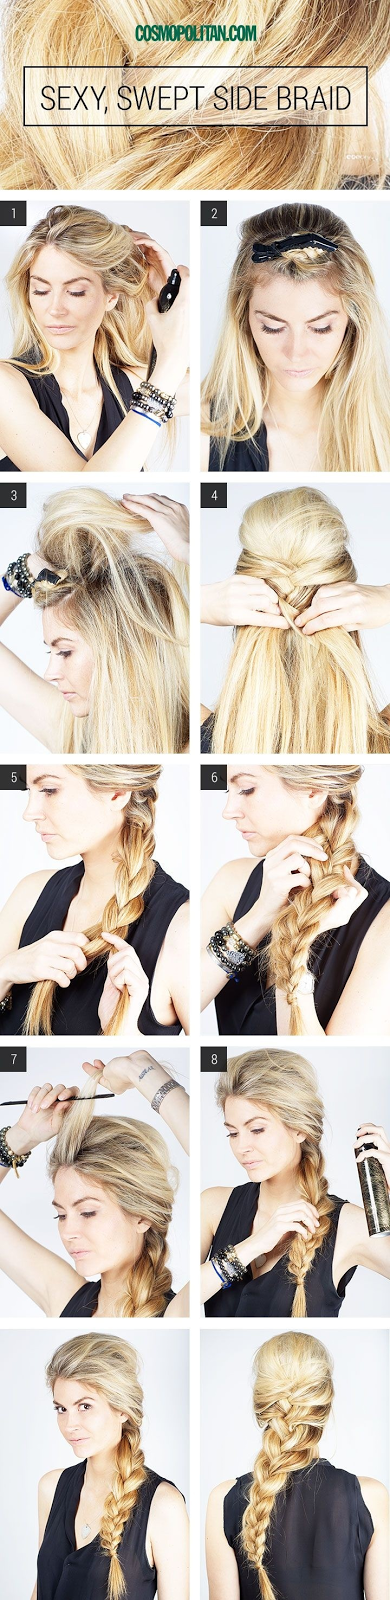 5 French Braids Hairstyles Tutorials